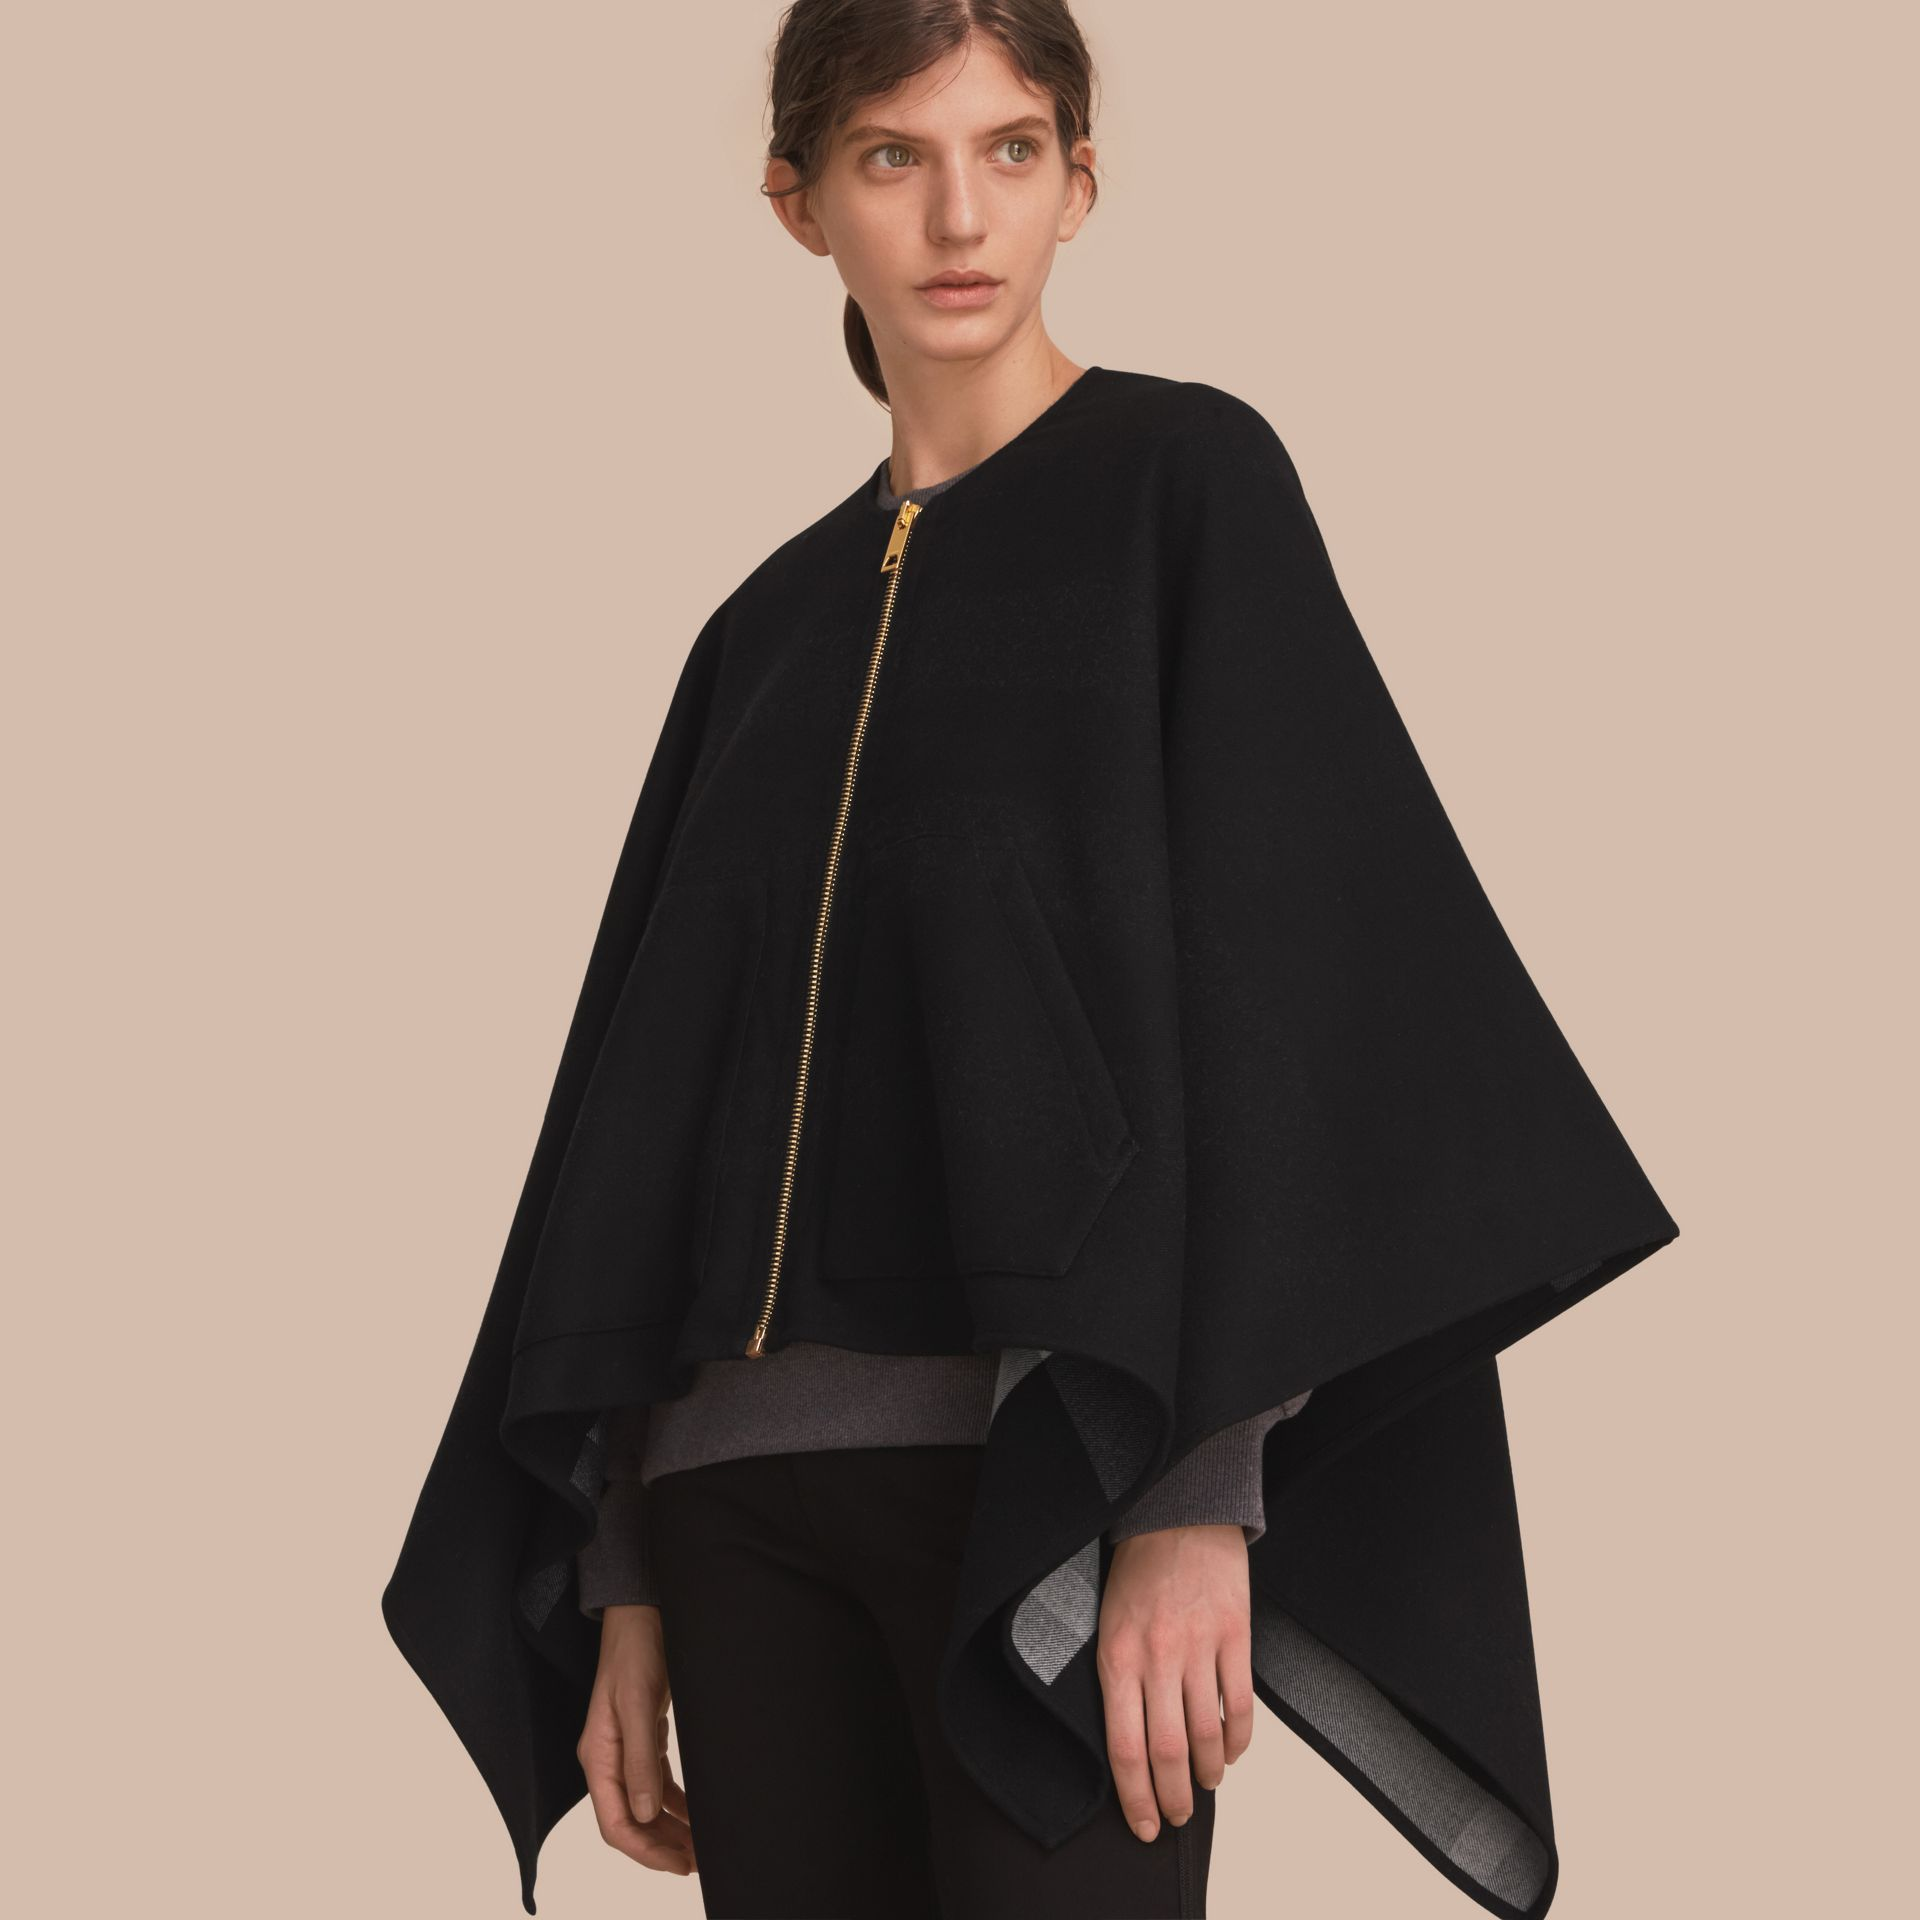 Merino Wool Poncho in Black - Women | Burberry Australia - gallery image 1